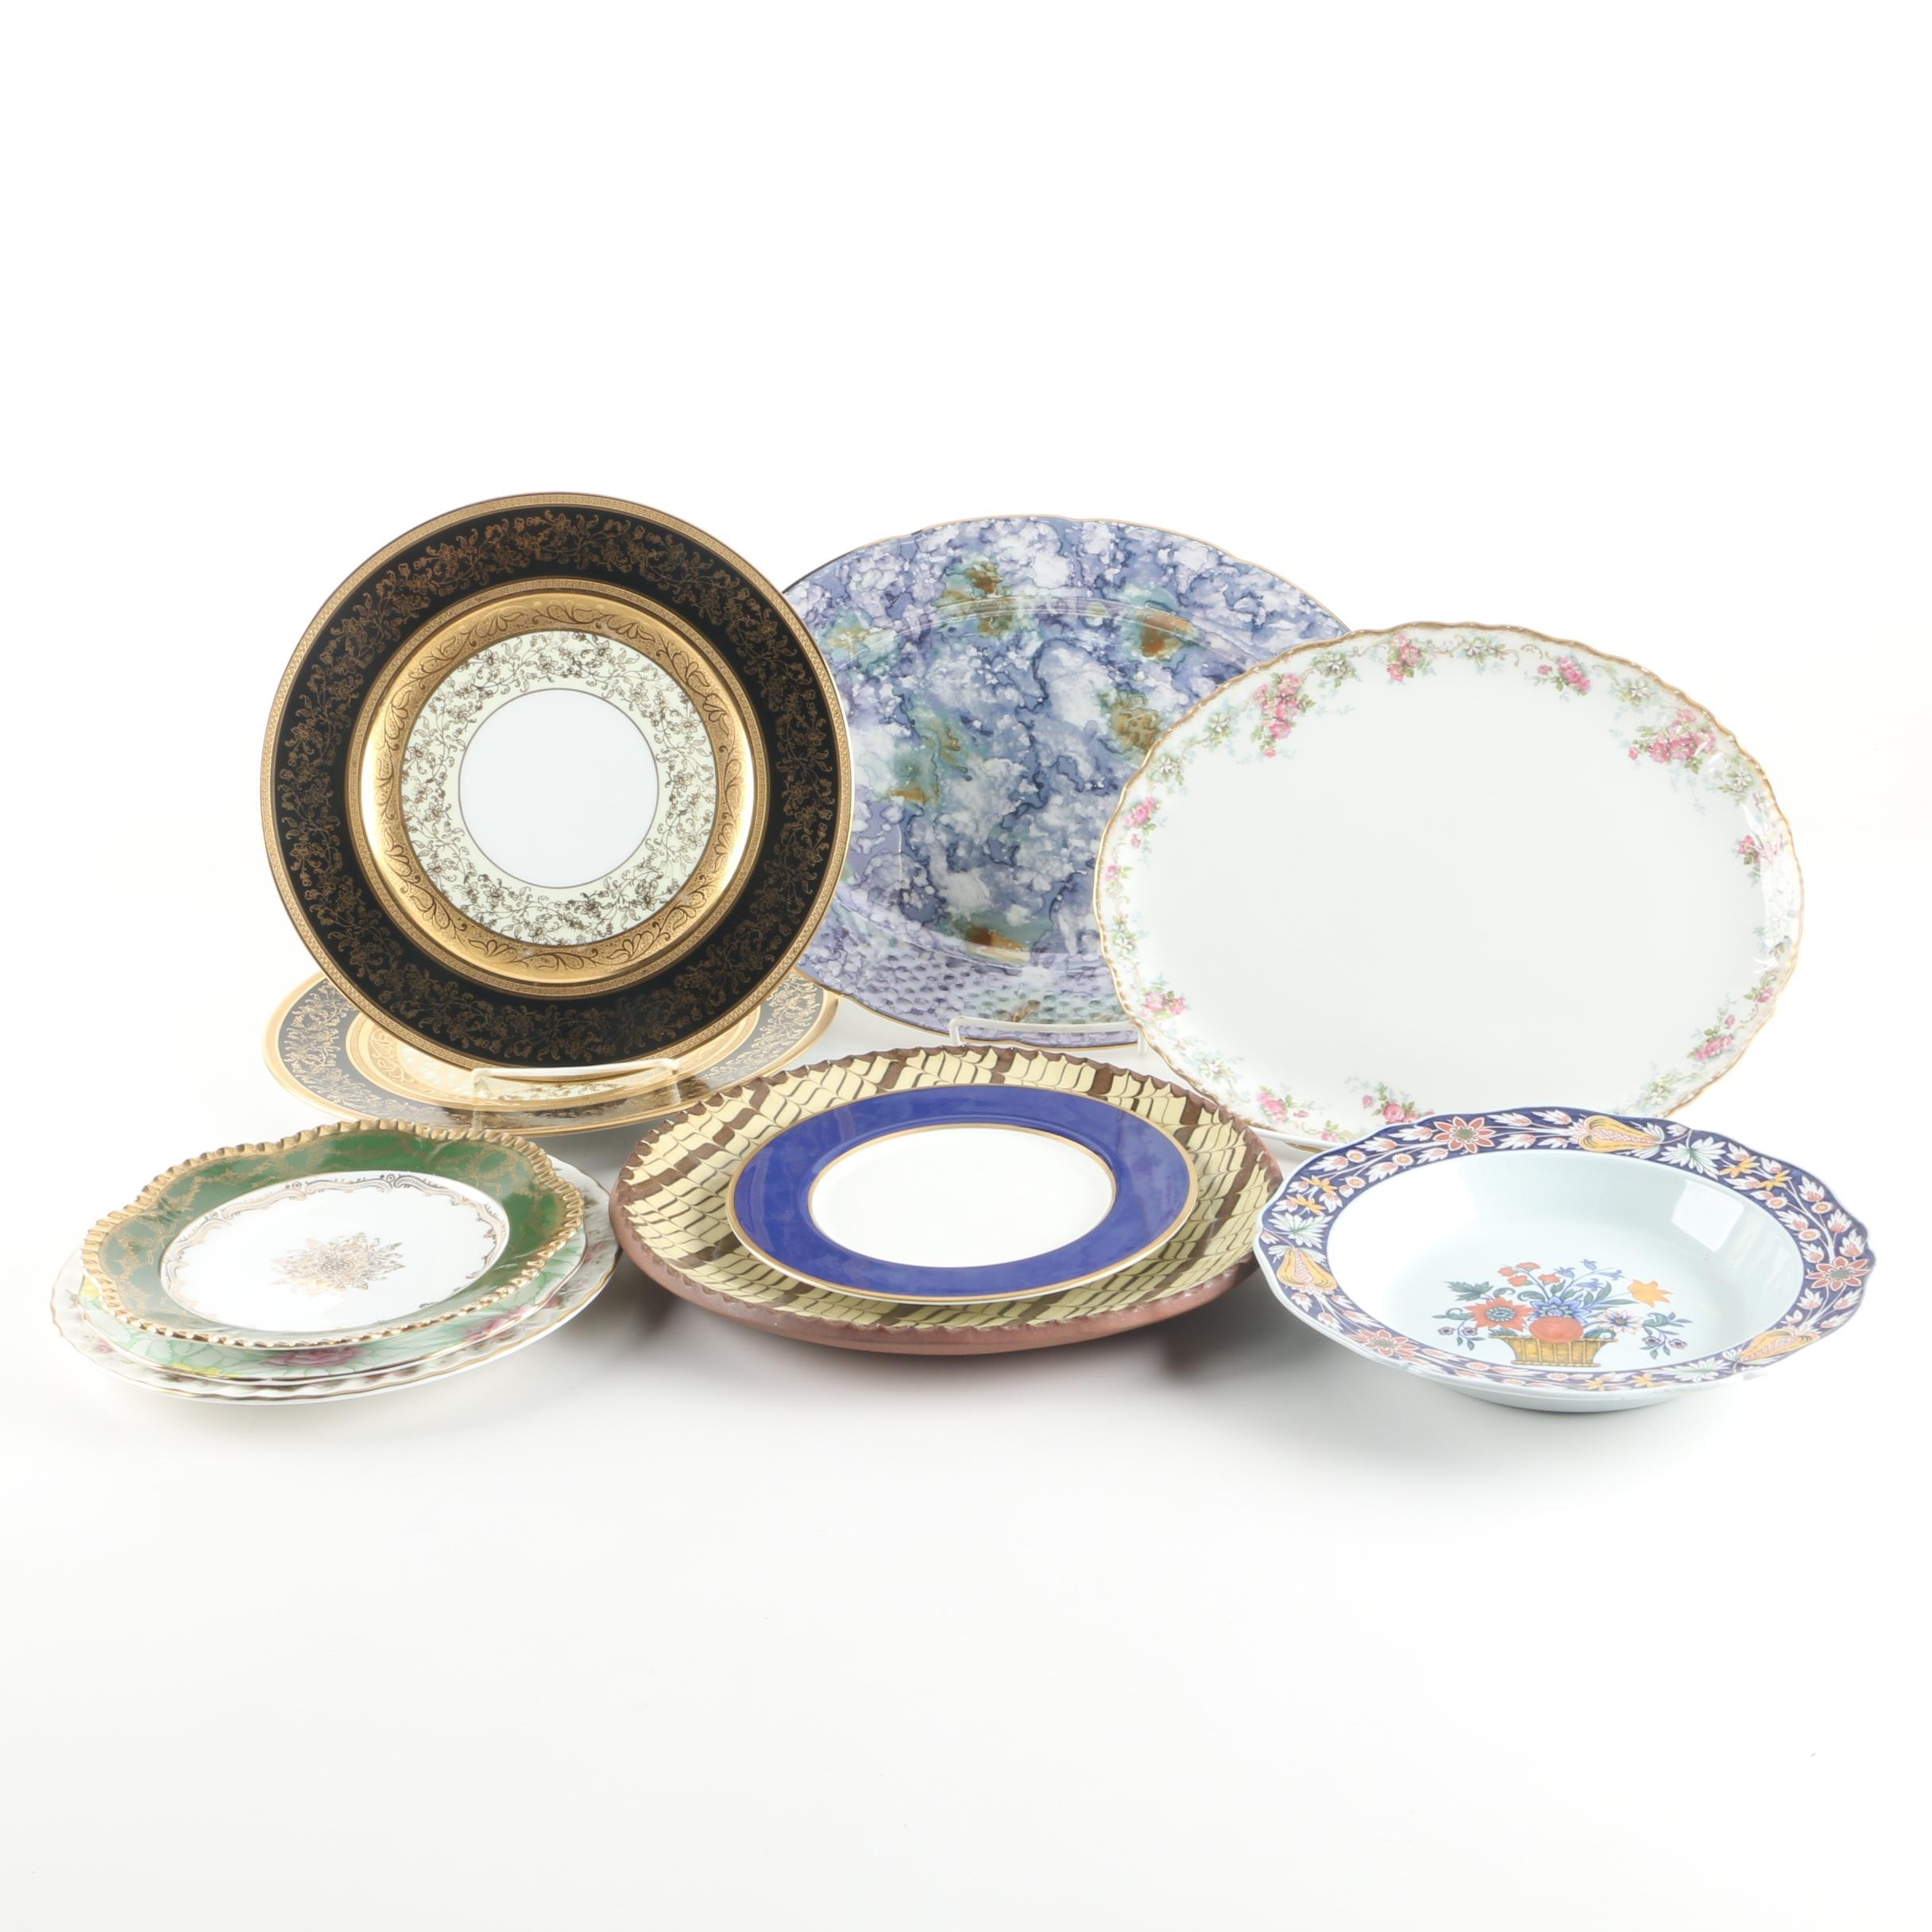 """Minton """"Spring Bouquet"""" Porcelain Plate with Other Tableware and Serveware"""